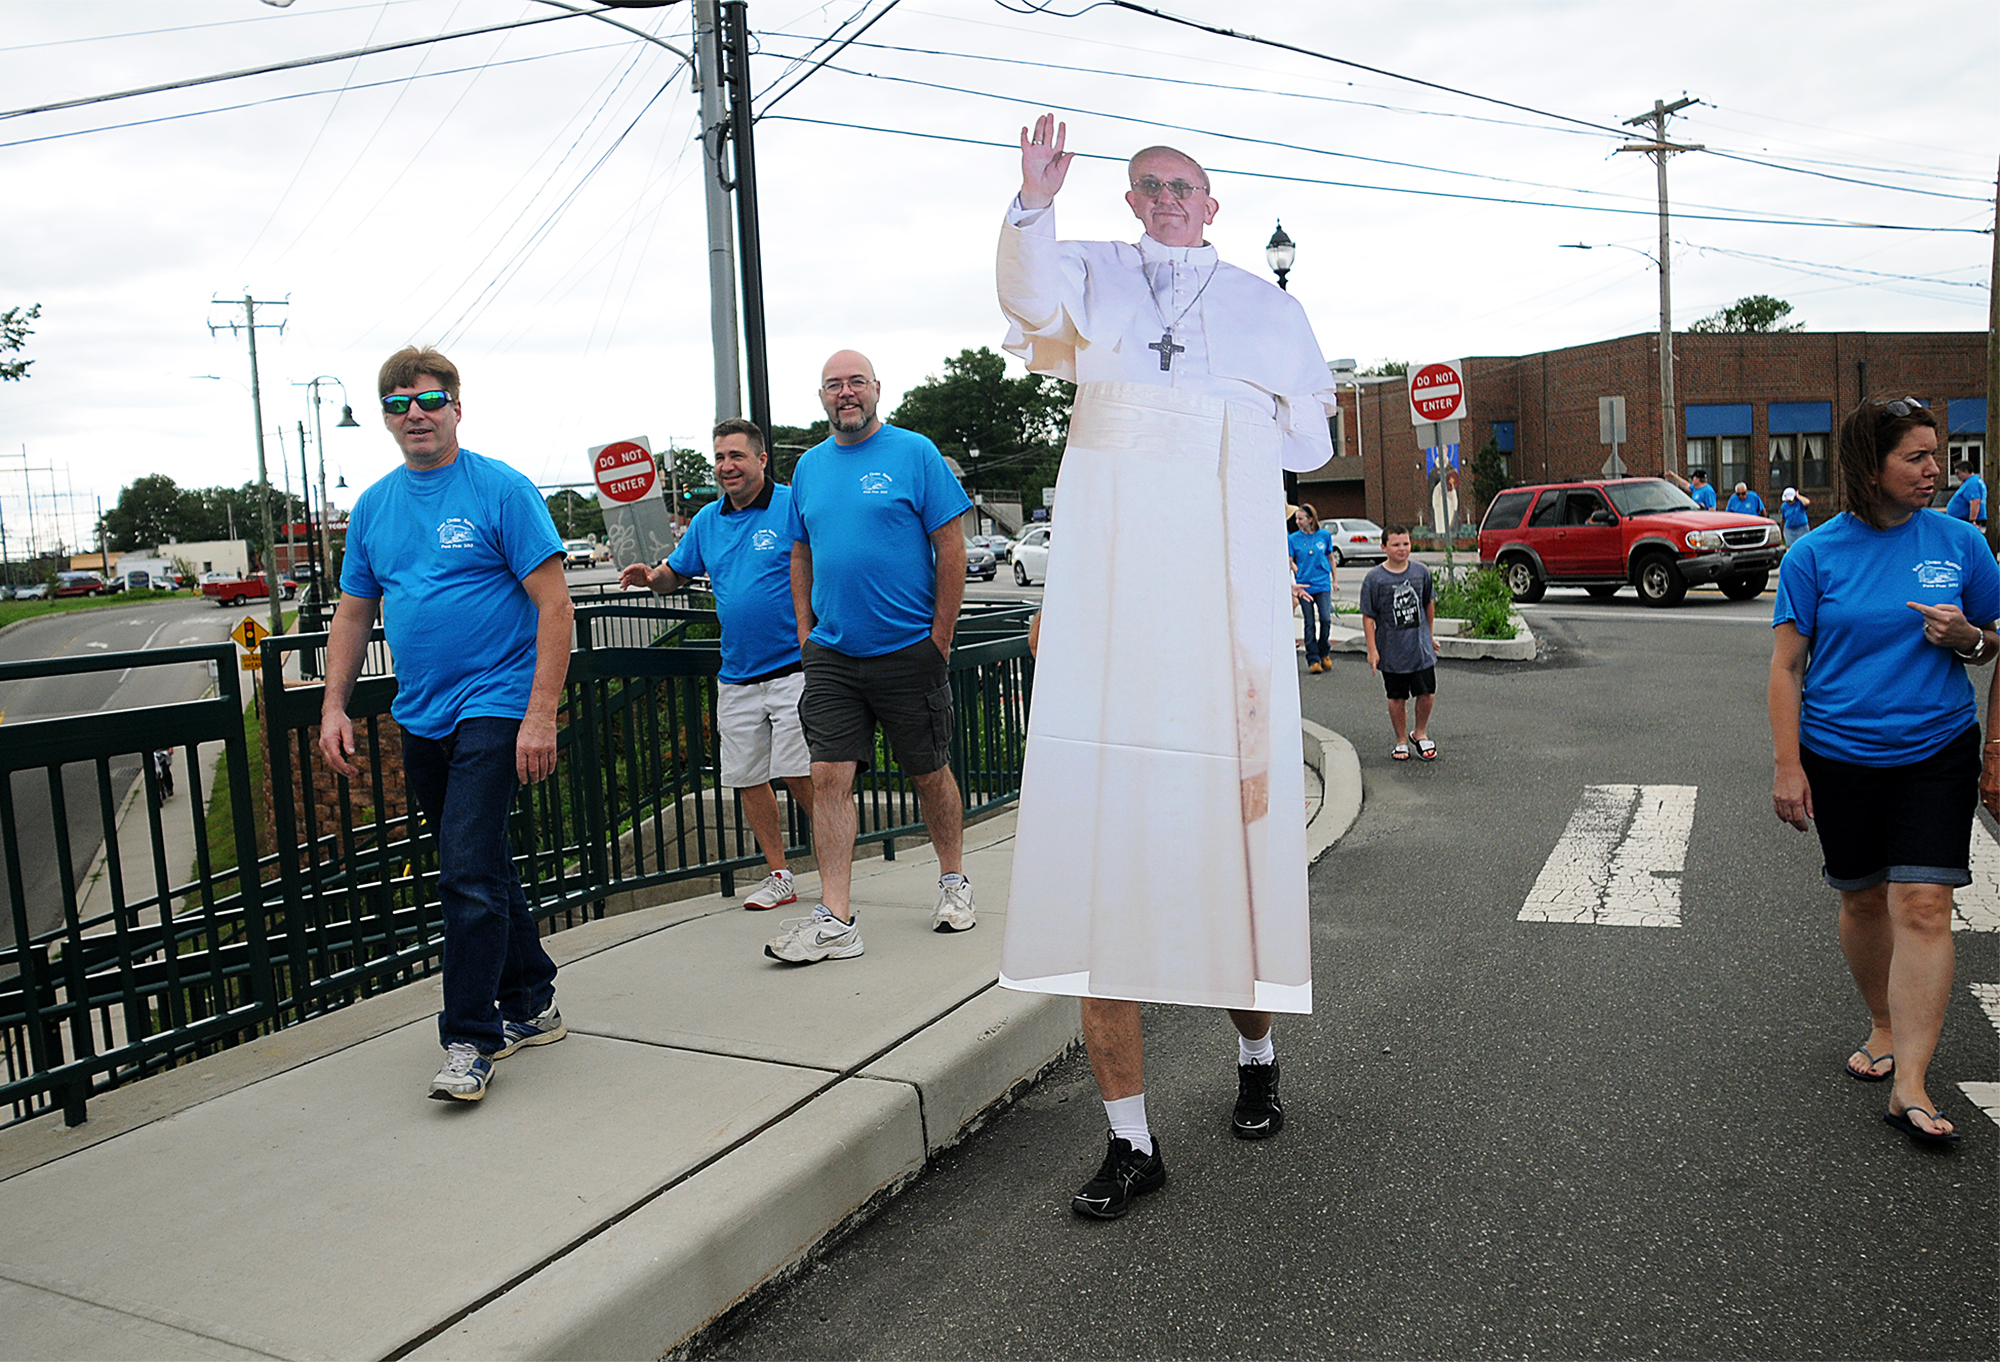 Parishioners from St. Thomas Aquinas Church in Croydon walk with fellow parishioner Tony Cinkutis, 75, as he carries a cardboard cutout of Pope Francis to the train station across the street from their church on Sunday, June 28, 2015. The Croydon train station was a stop on the Trenton line for the World Meeting of Families in September.